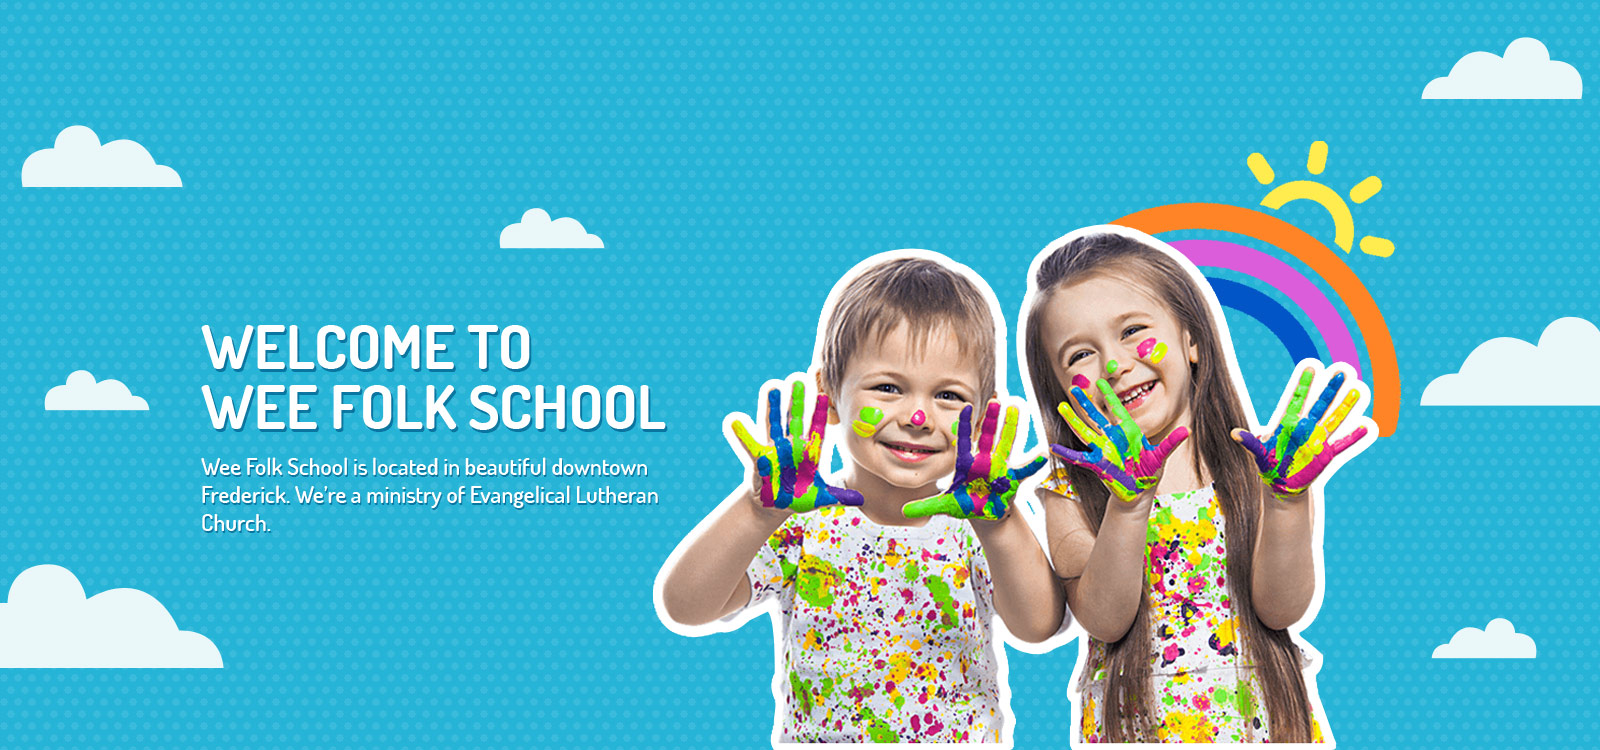 Welcome to Wee Folk School - smiling kids covered in colorful paint